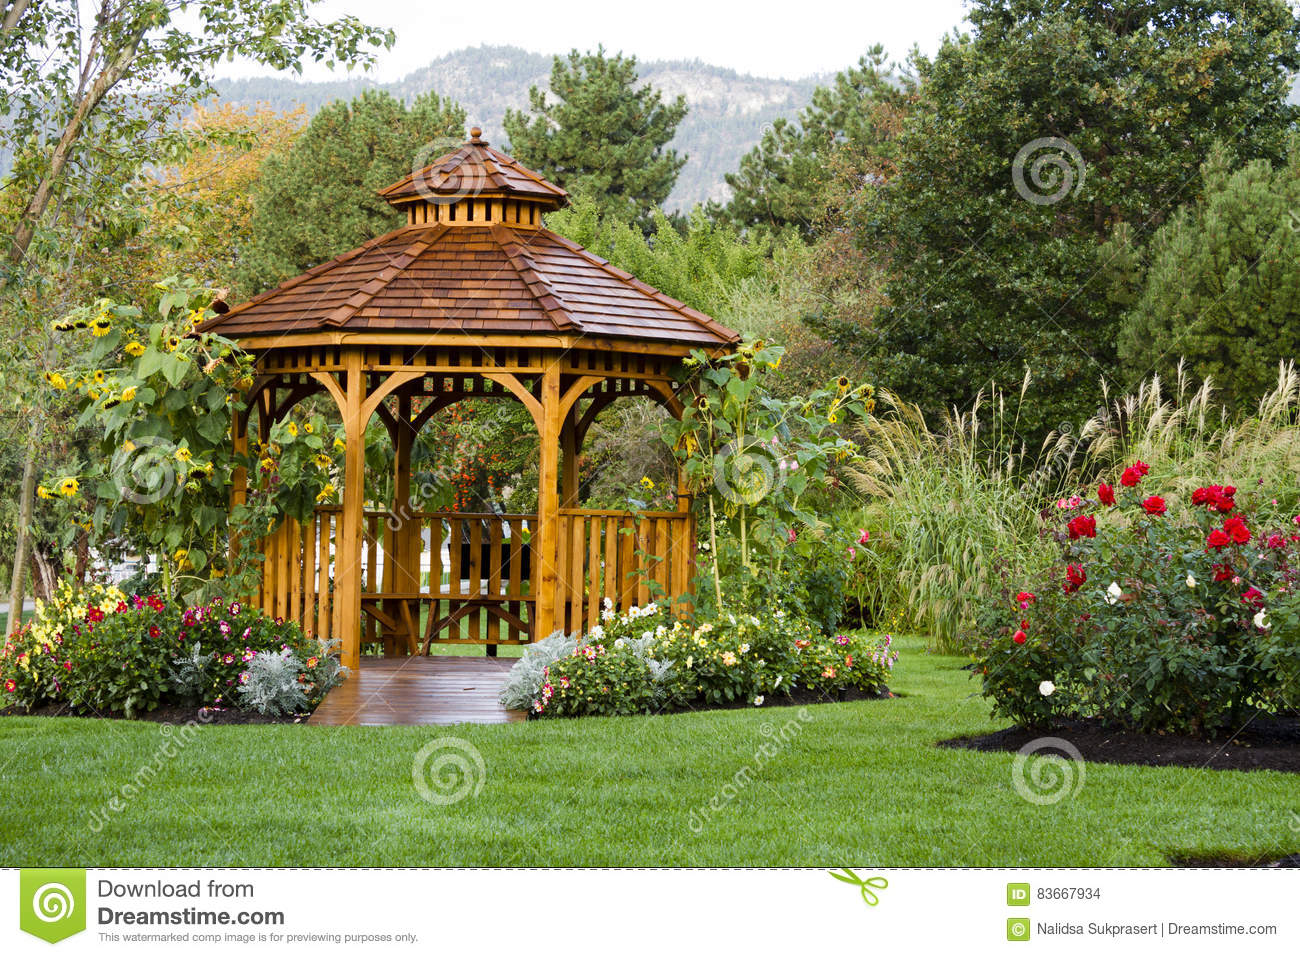 Cedar Gazebo Backyard Garden Park